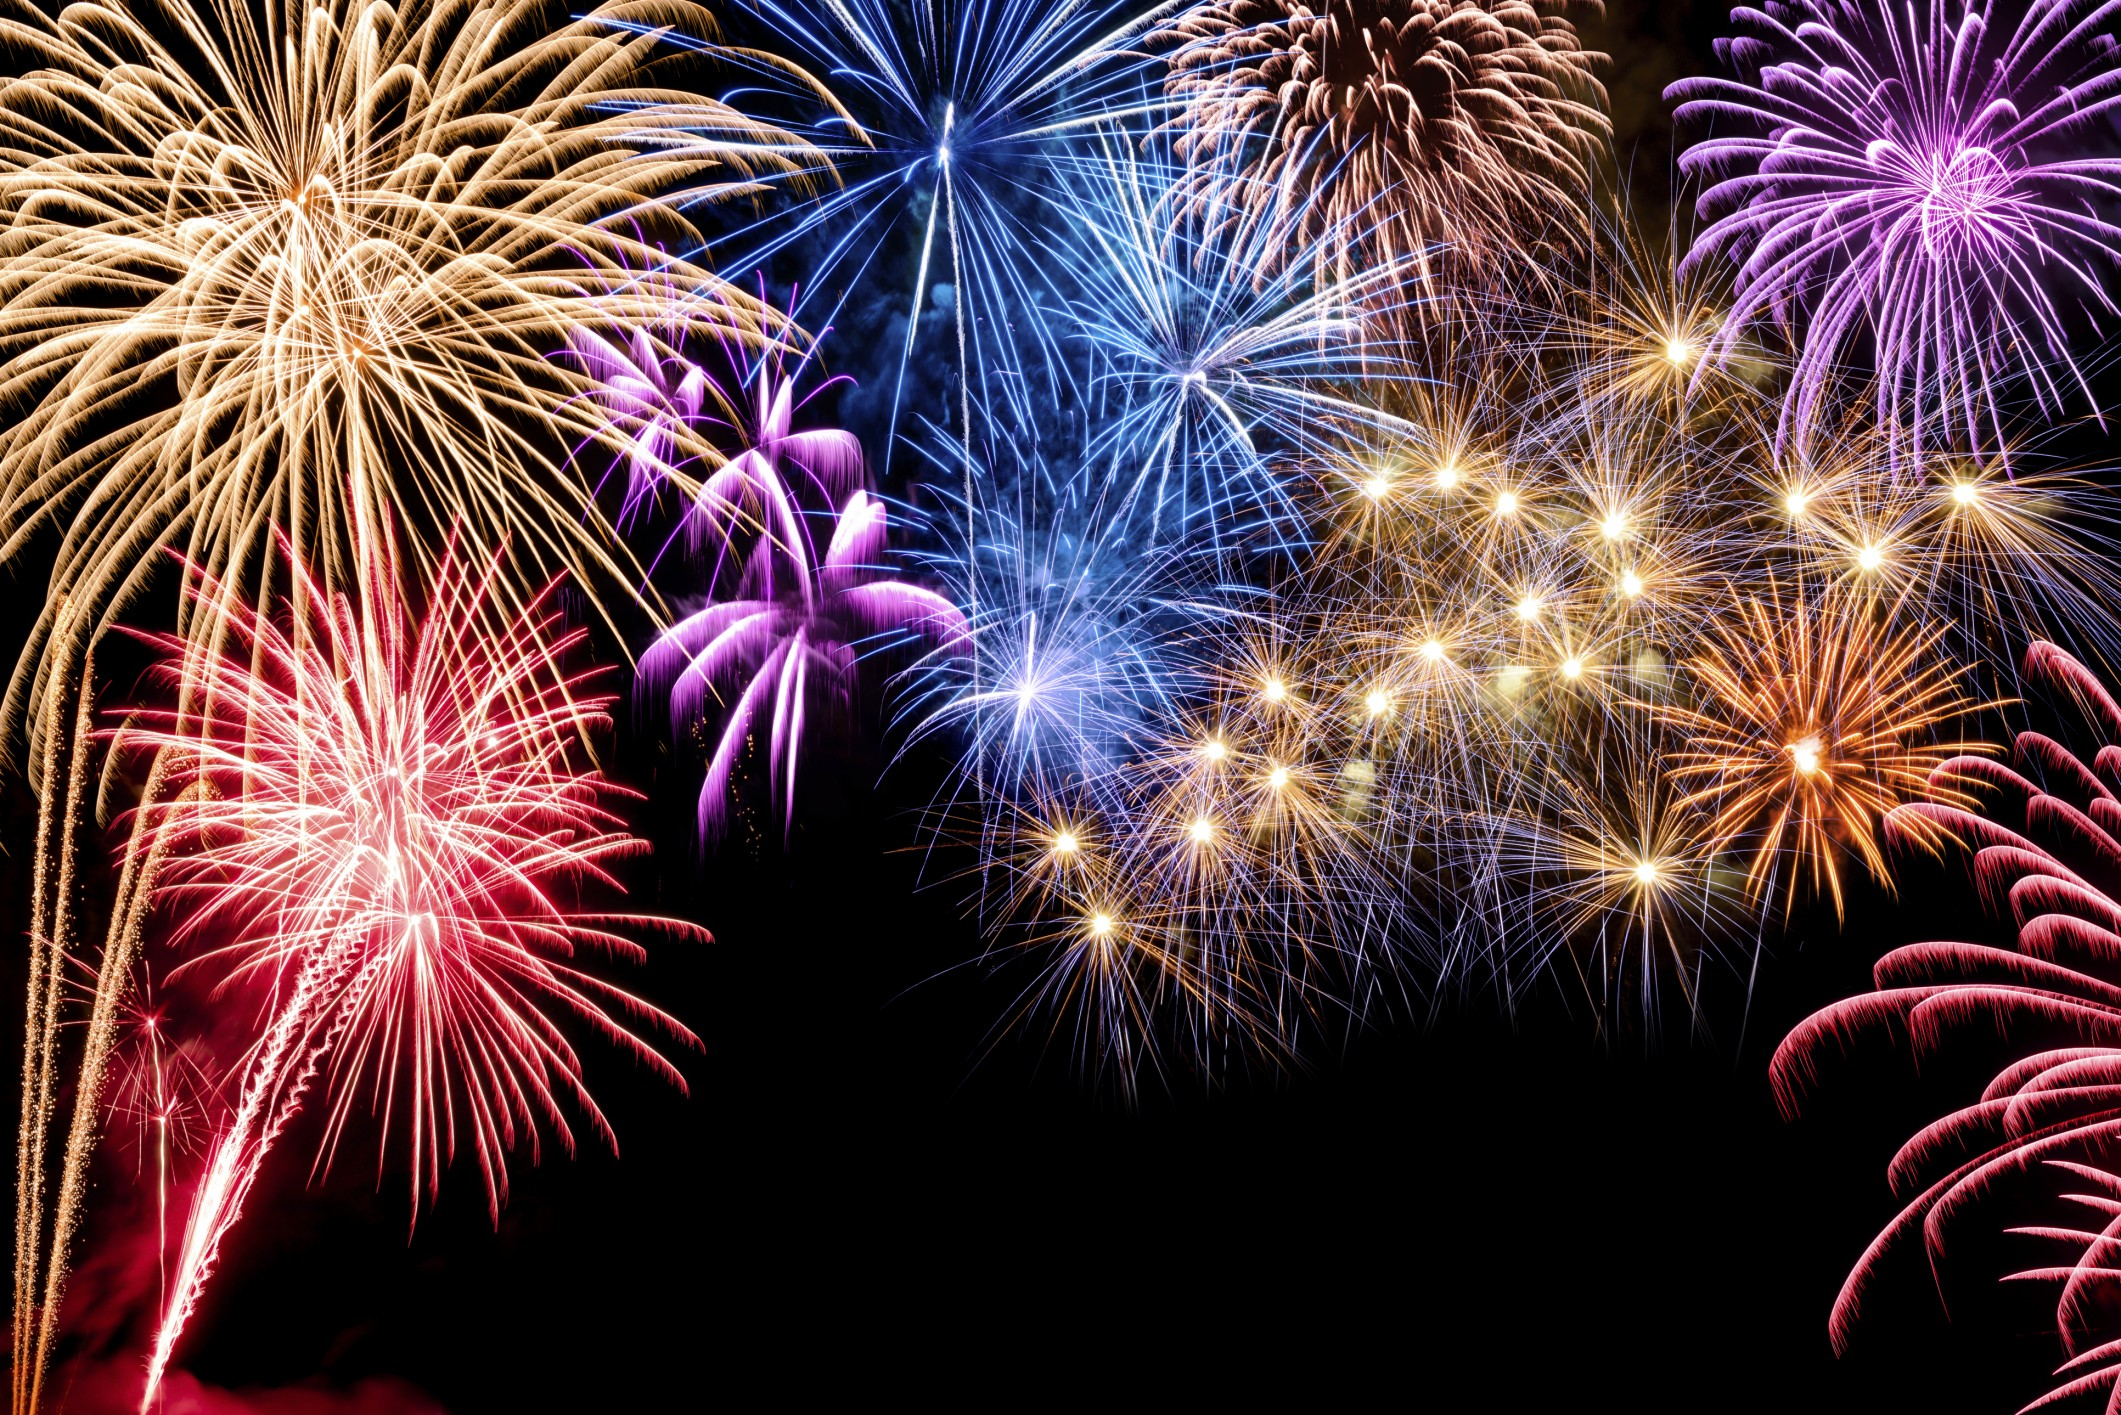 New Years Eve background Download stunning HD 2121x1415